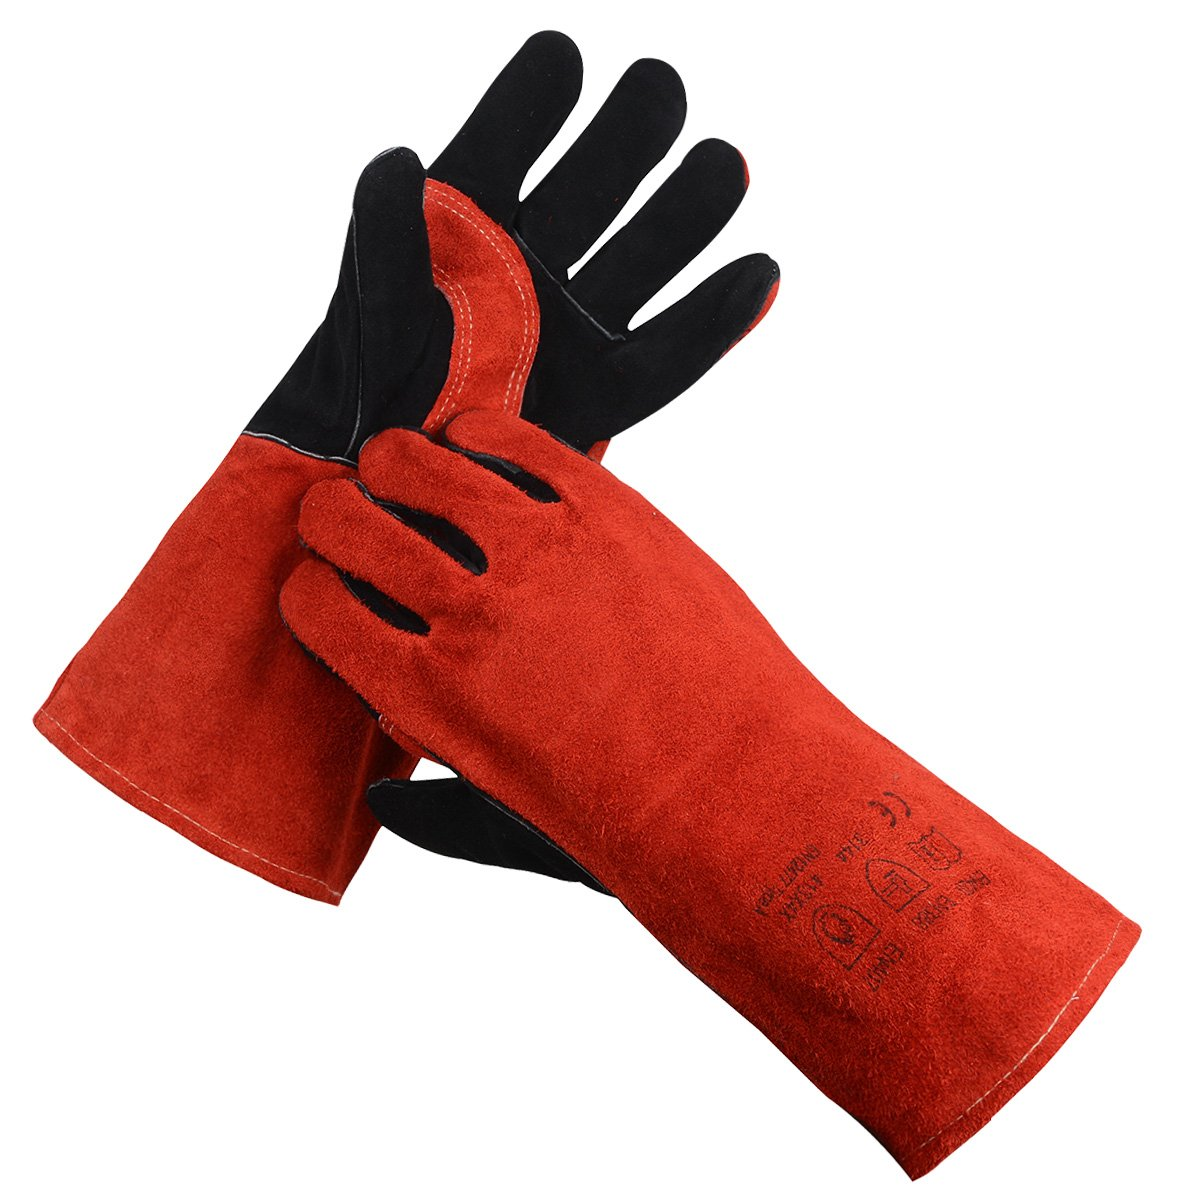 BHSHEN Welding Gloves Stiched Leather for Tig / Mig Heat Resistant 14'' (Red)